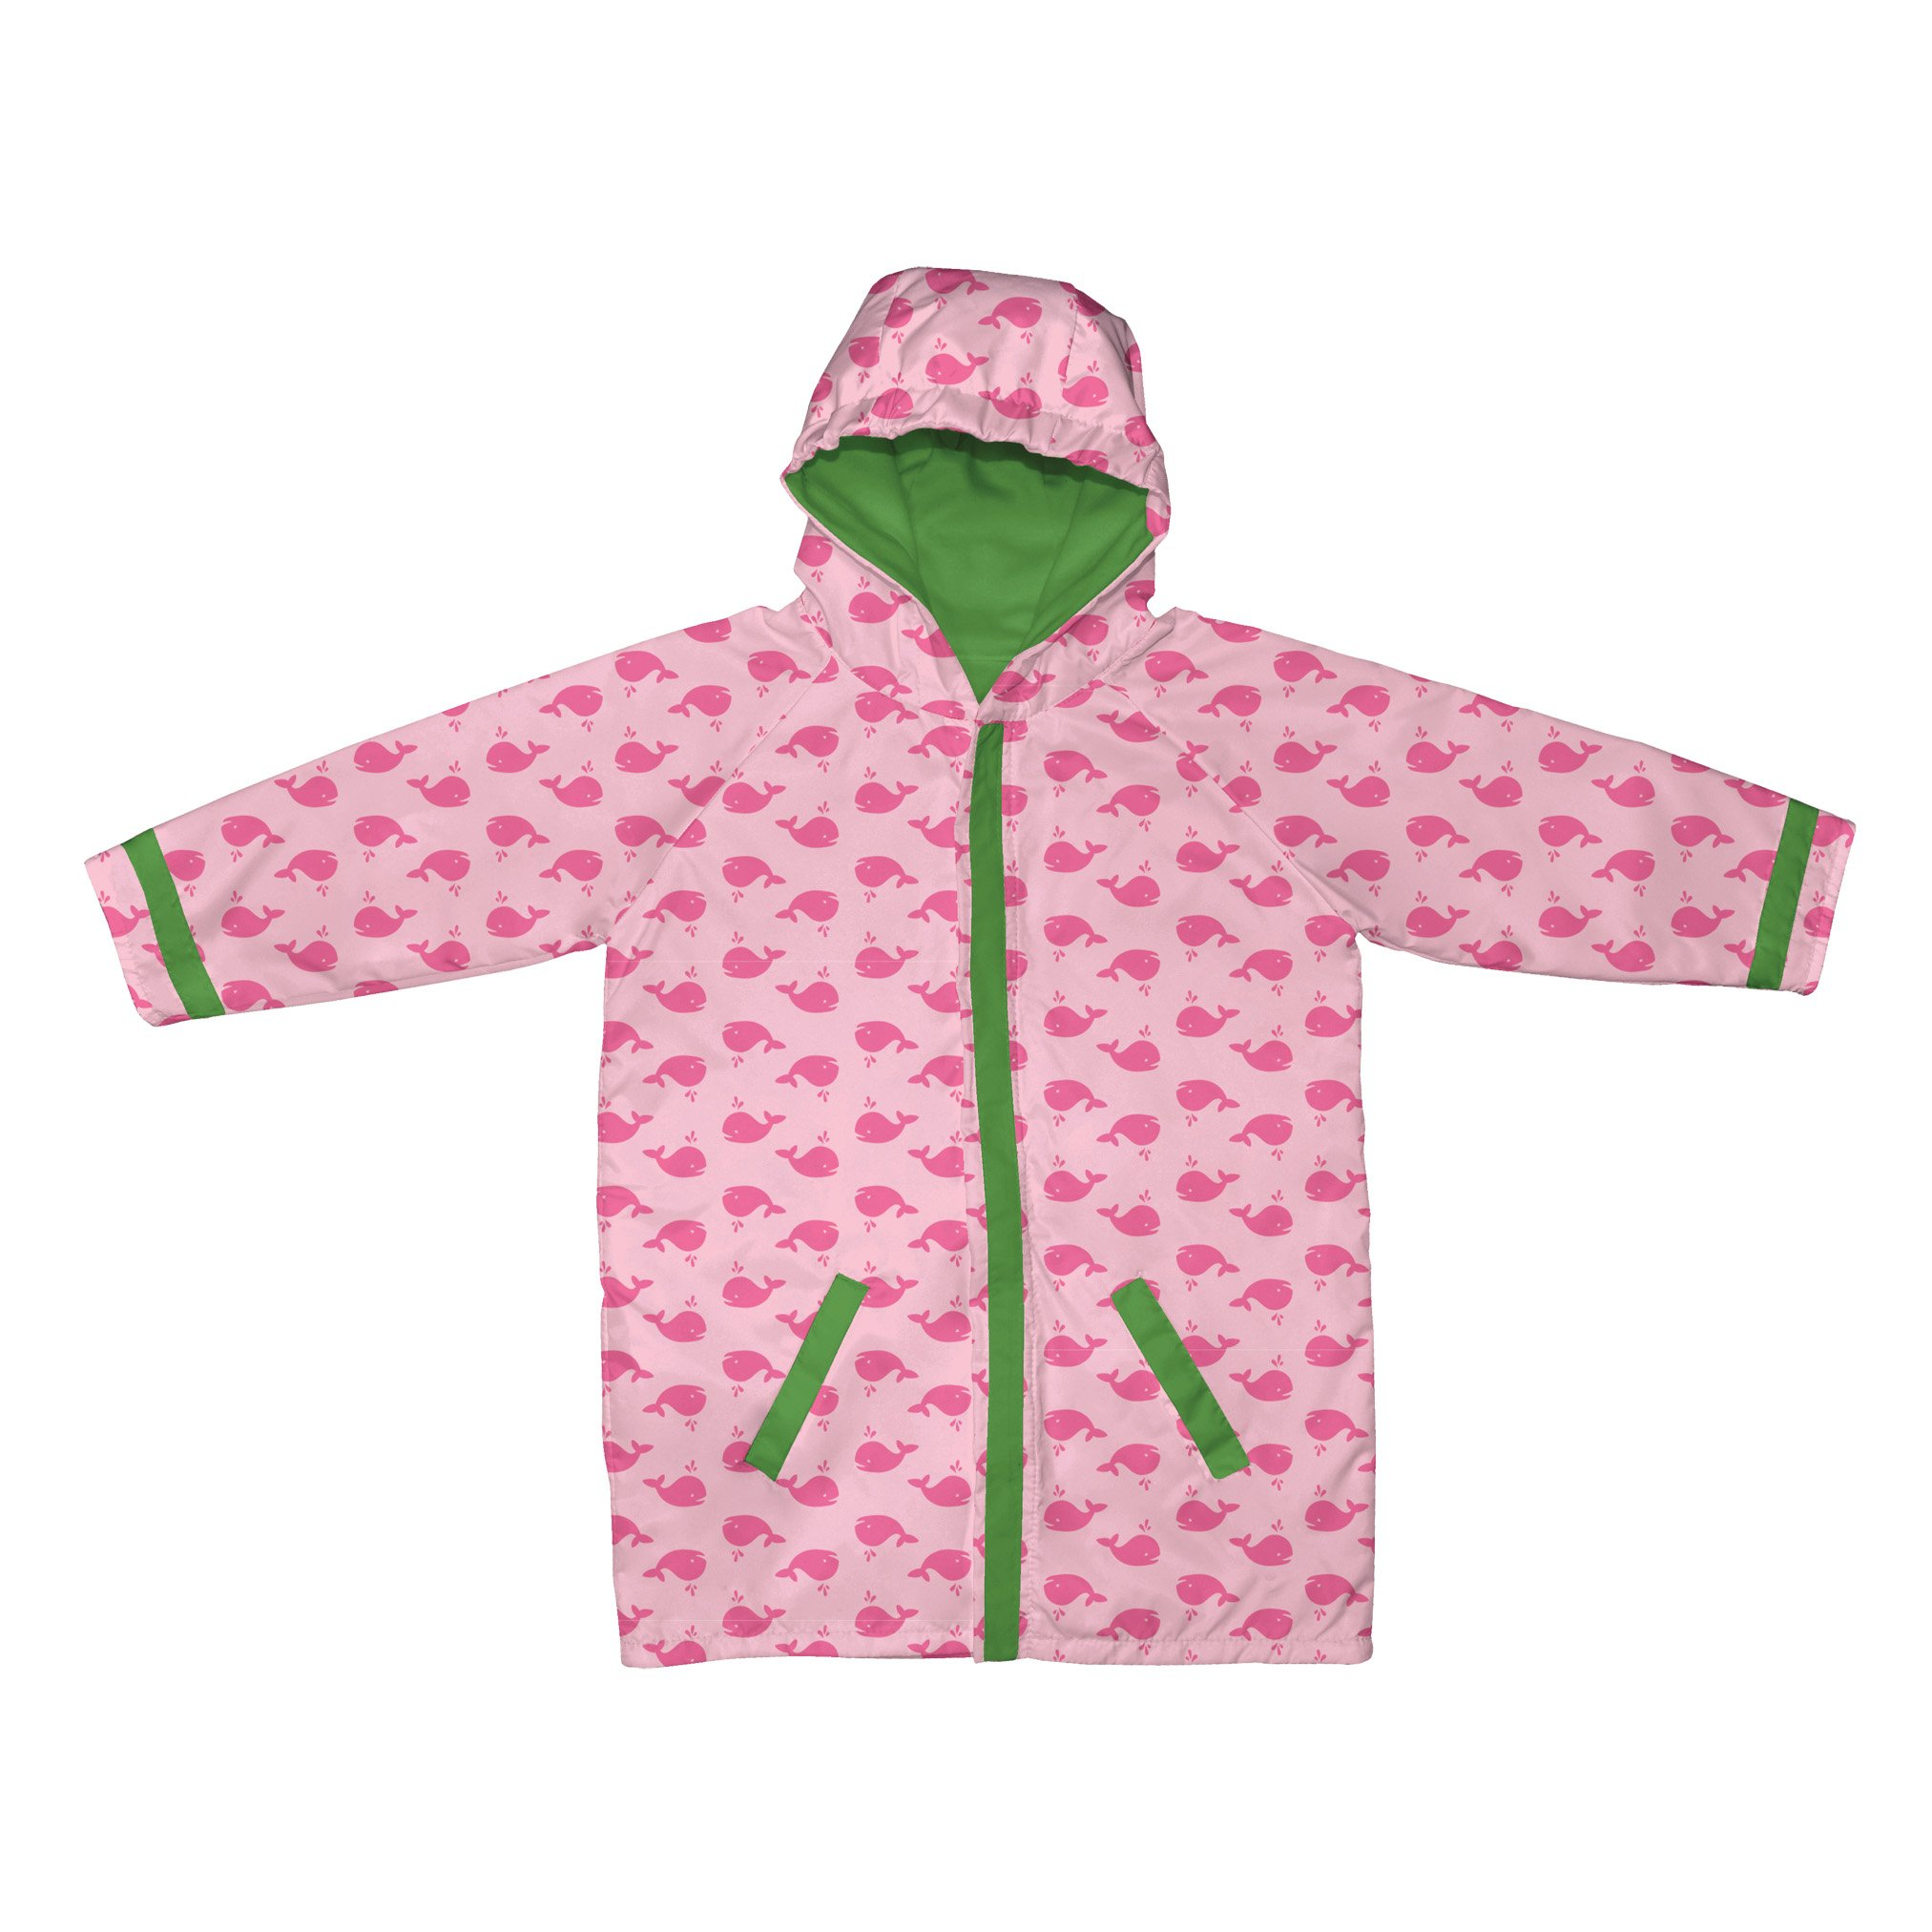 i play. Midweight Raincoat, Pink, 6 12 Months by i play.